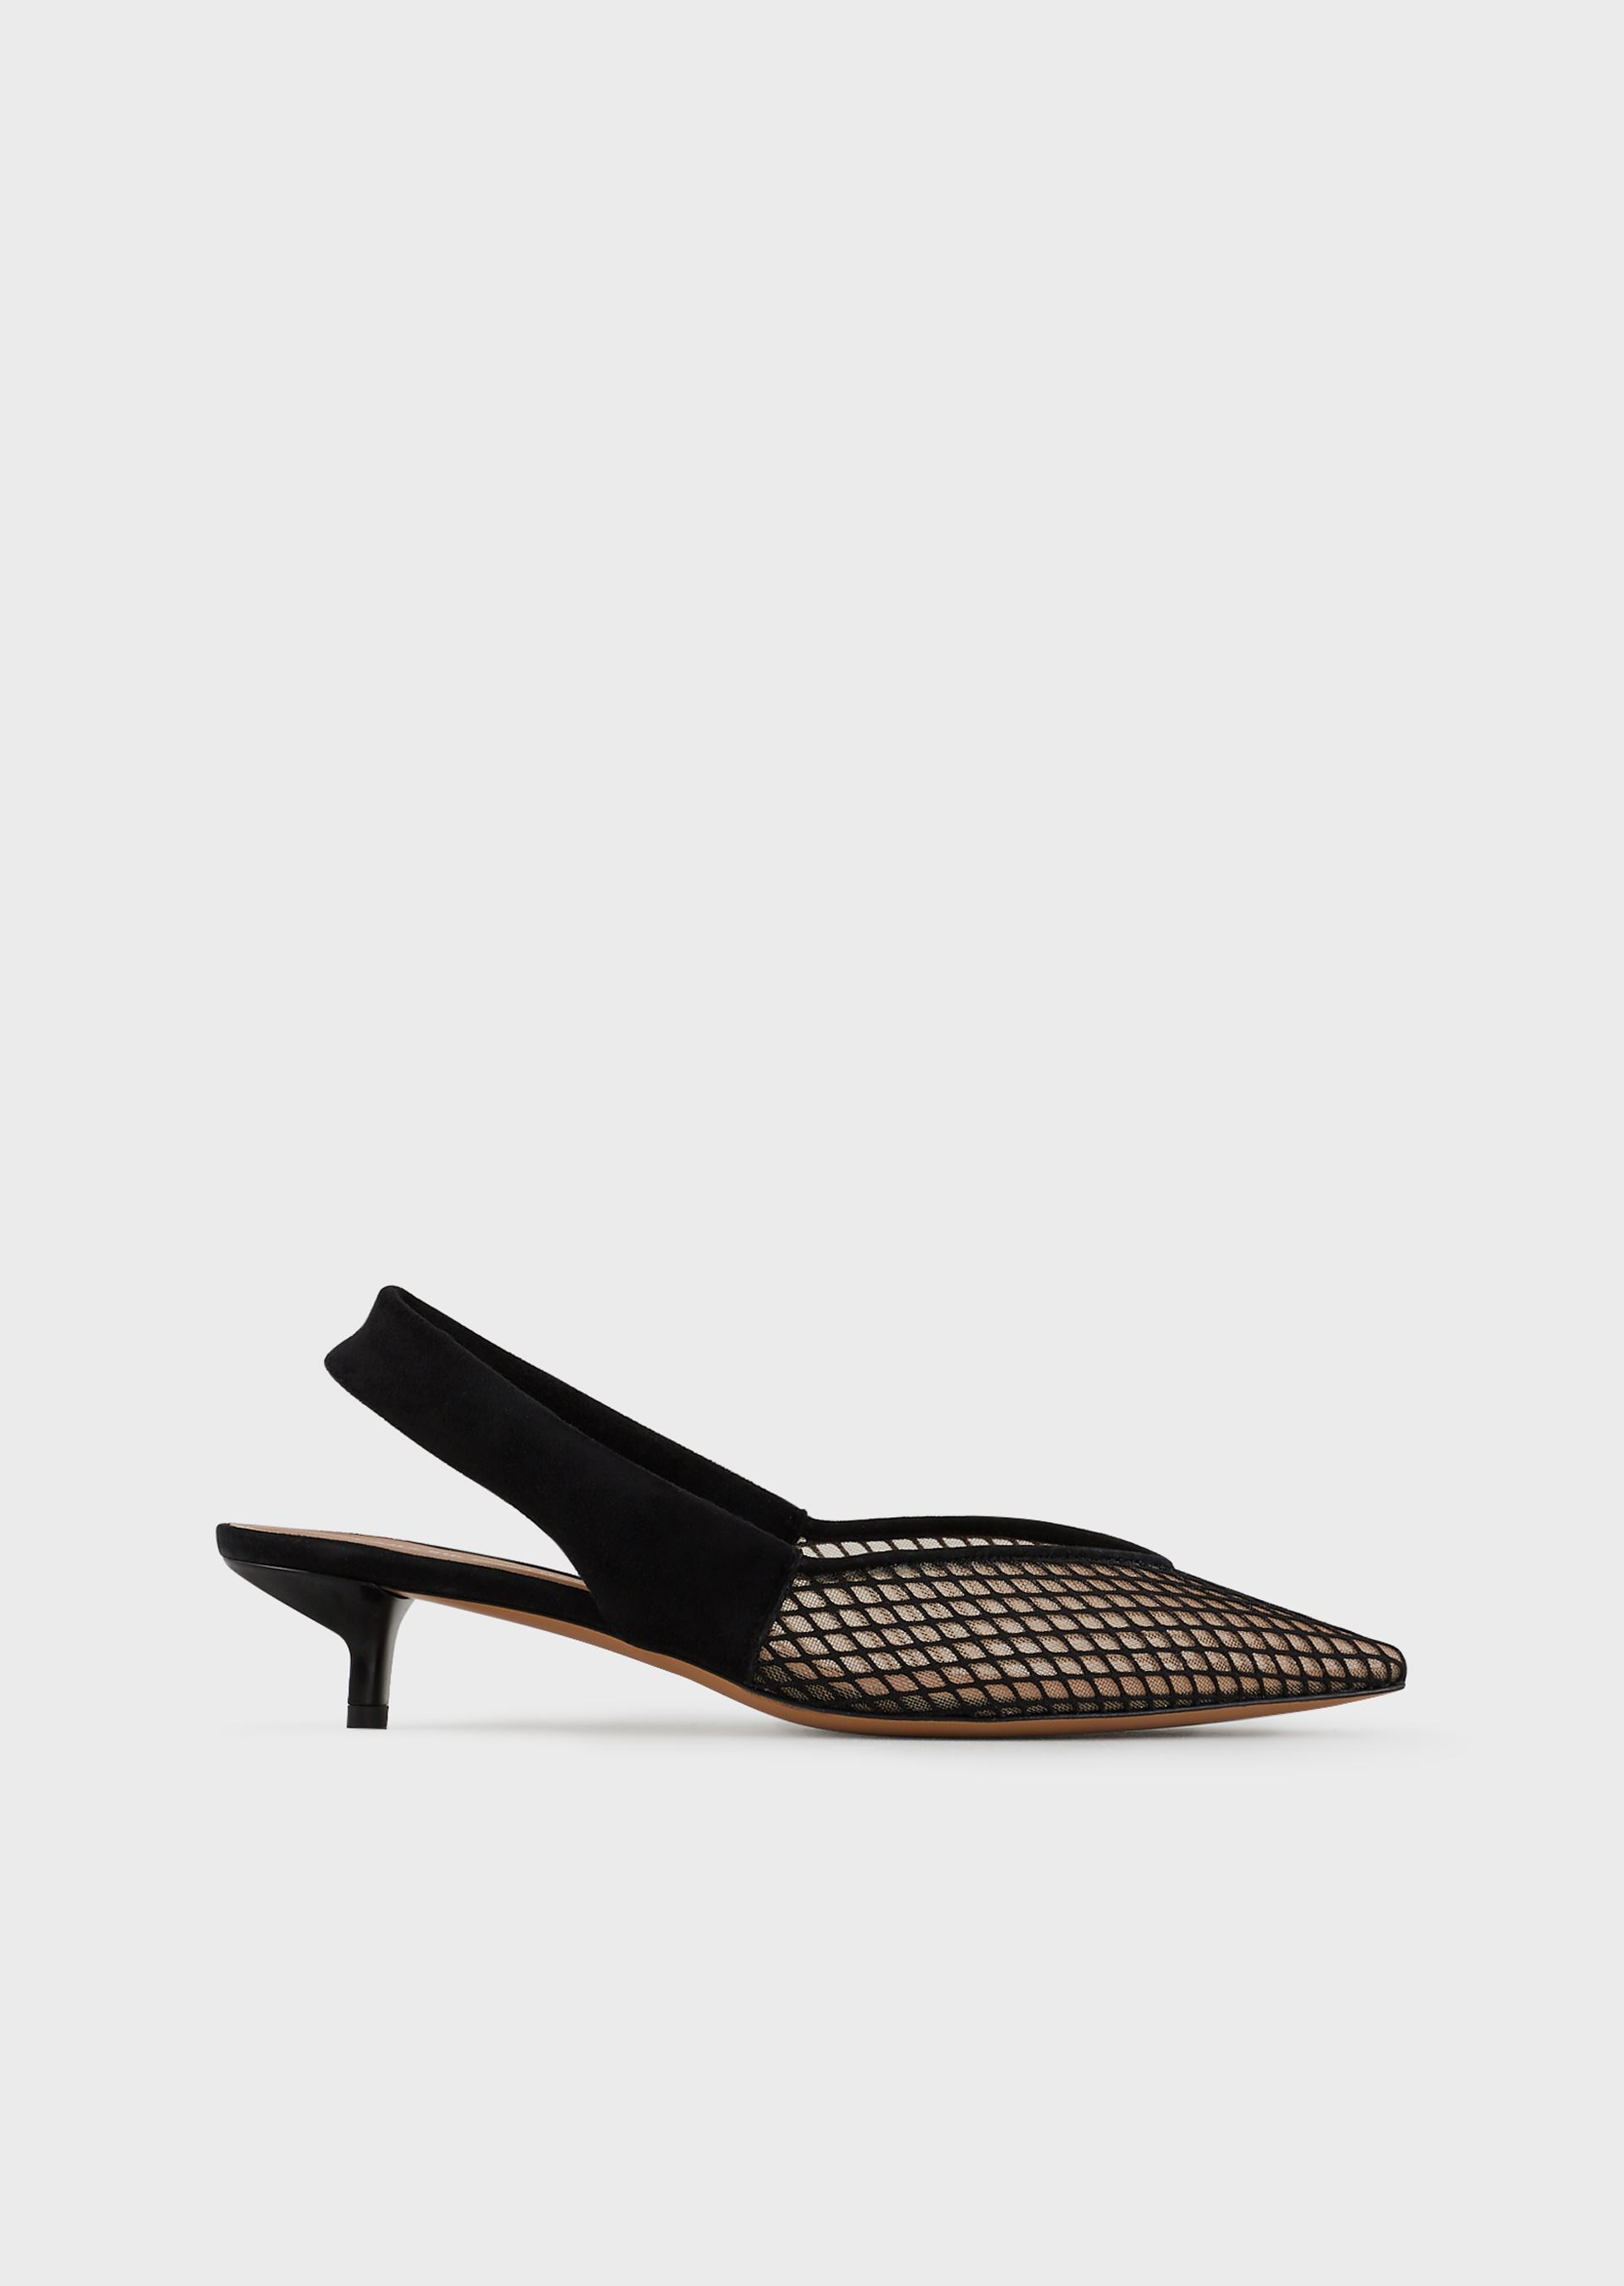 EMPORIO ARMANI Suede slingbacks with mesh-covered toe